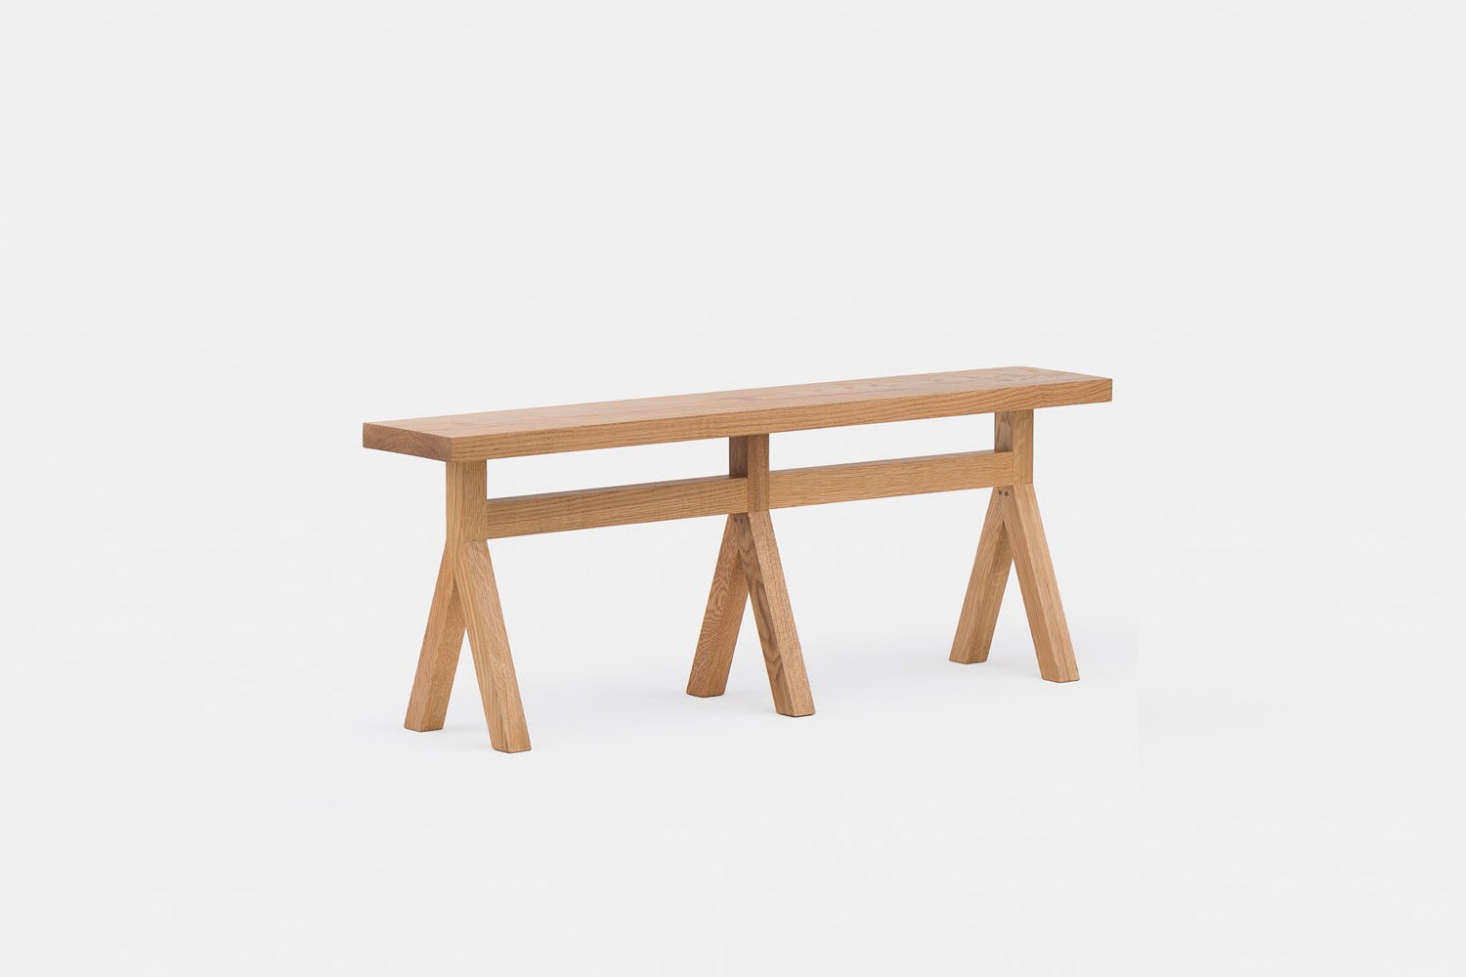 Designers Neri Hu Designed The Commune Bench As Part Of A Collection For Their